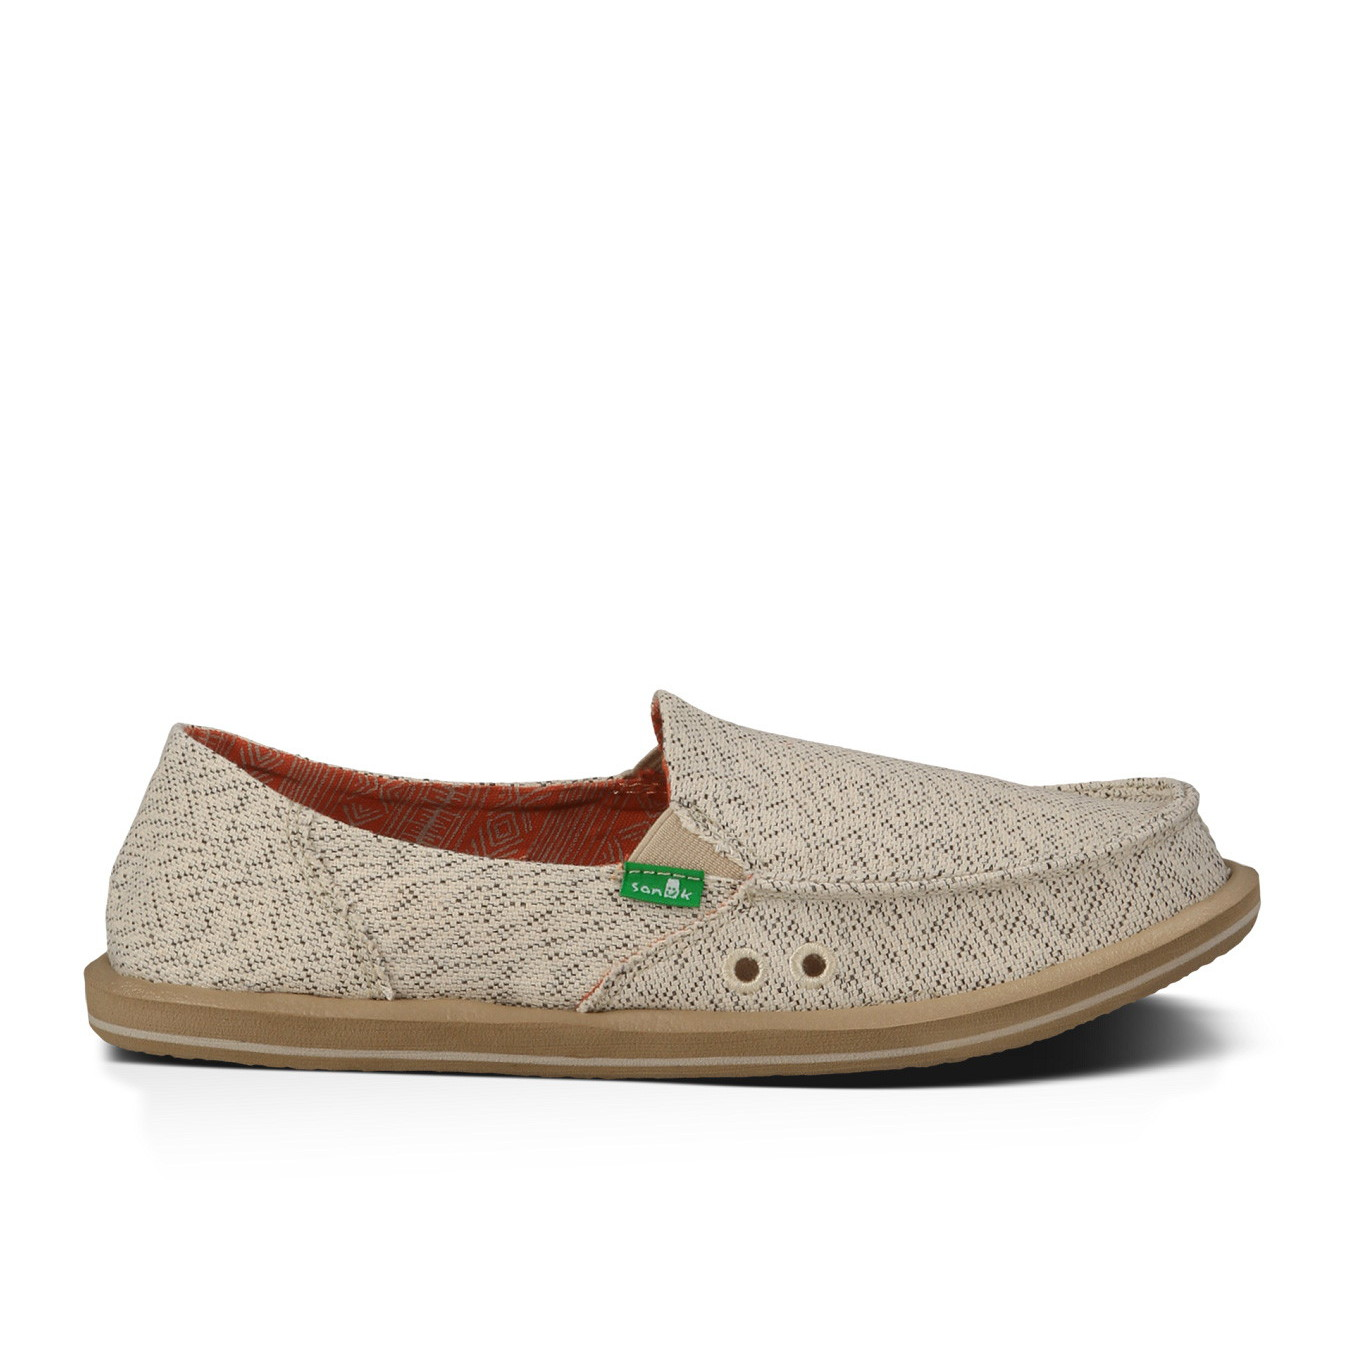 Women's Slip On Sneakers Our women's slip on sneakers come in canvas and leather and are designed to bring out your bold, bright, casual and classic styles. Learn how to rock your favorite Keds fashion by browsing our #LadiesFirst page online.